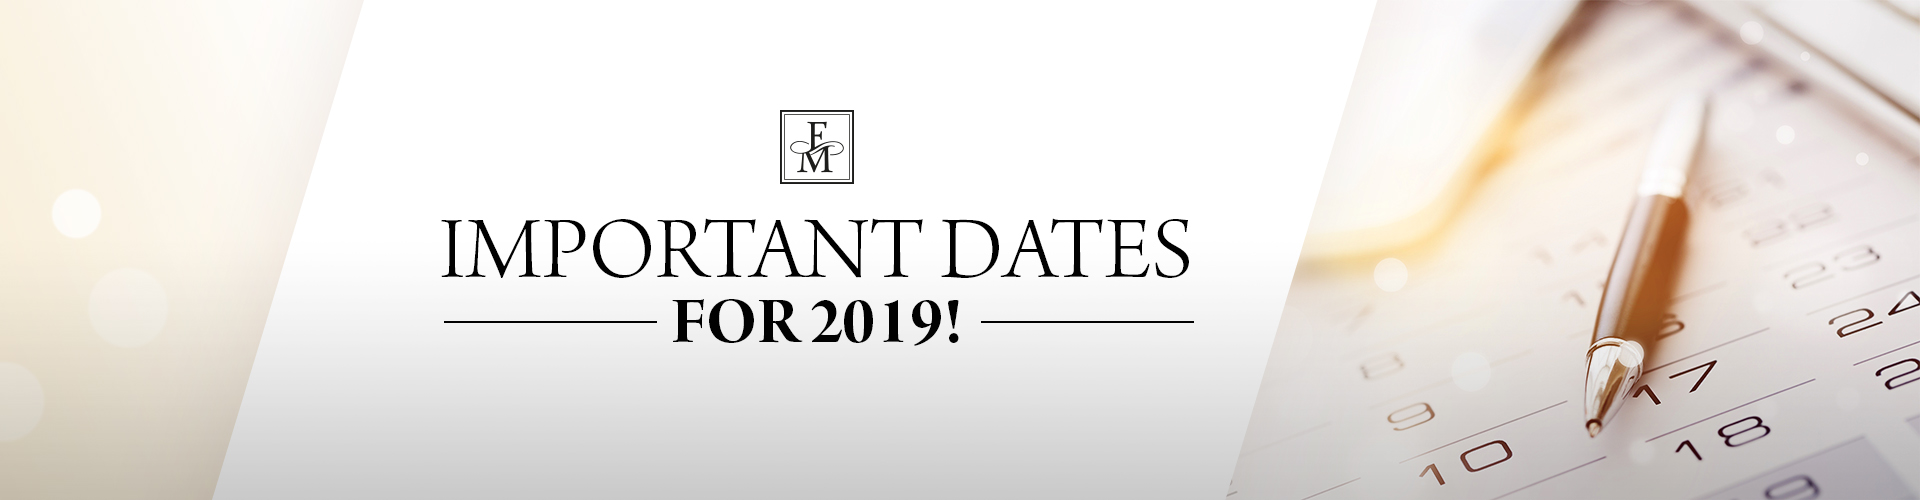 Important dates for FM World in 2019!